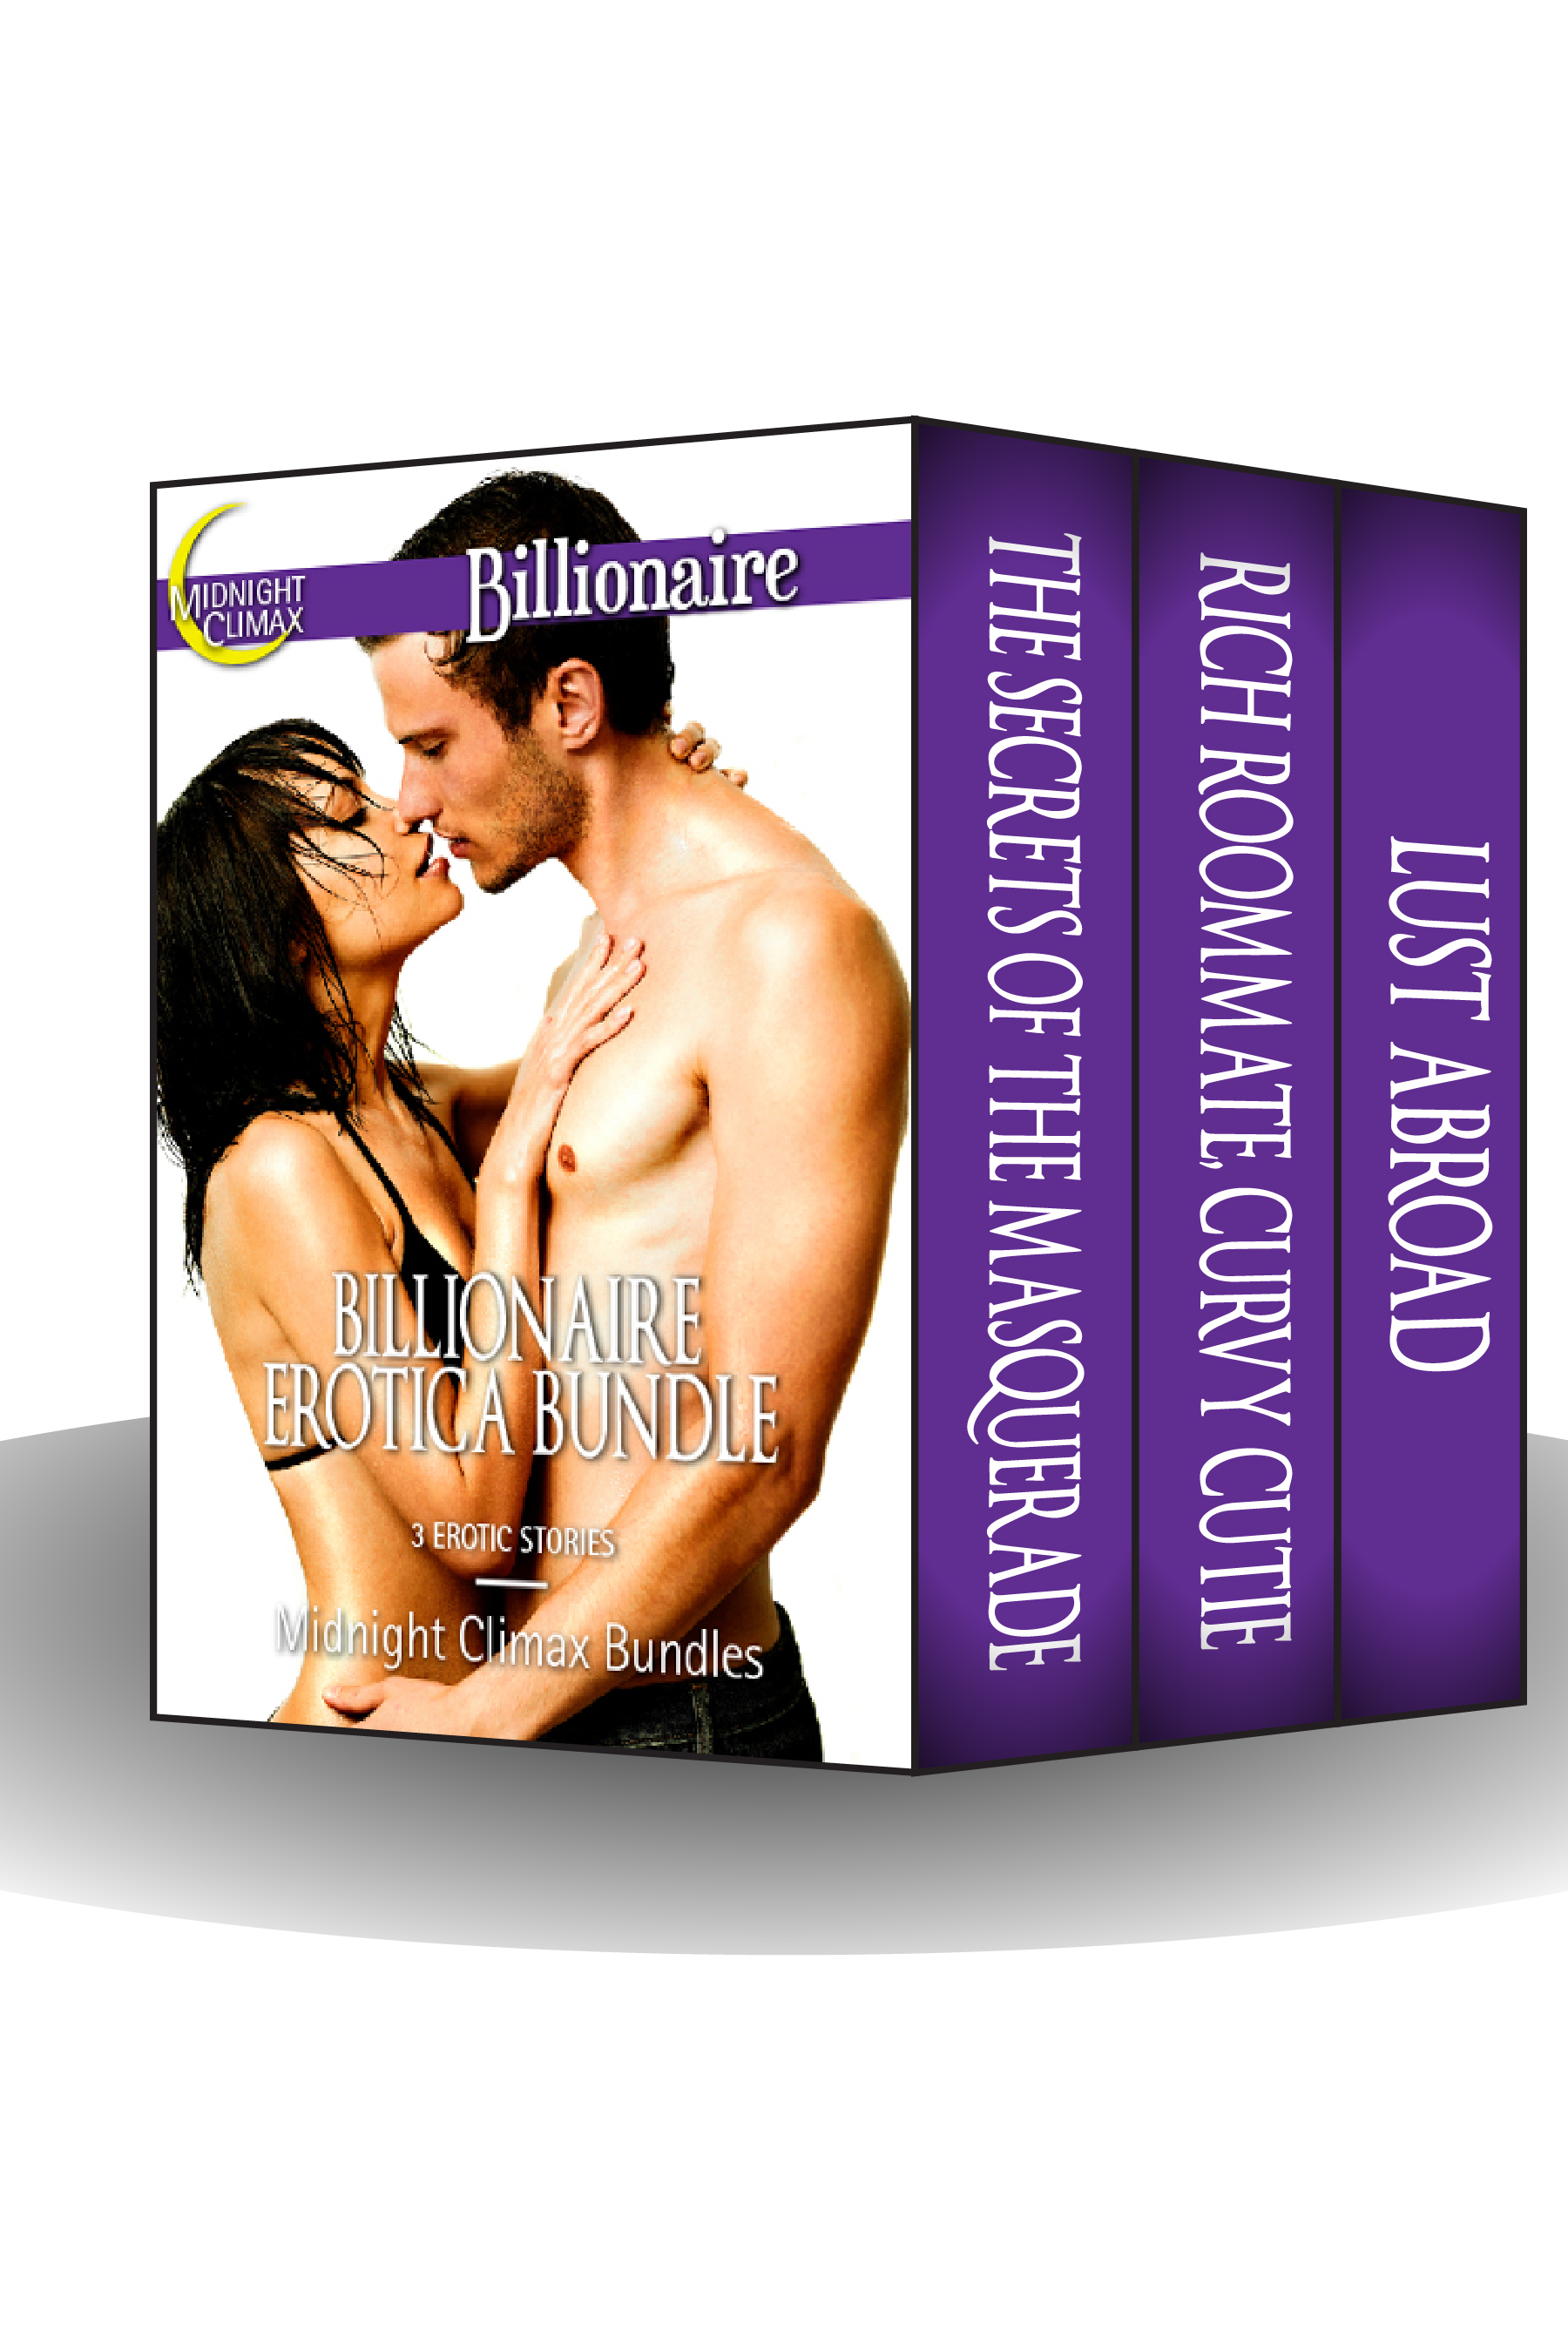 Midnight Climax Bundles - Billionaire Erotica Bundle (3 Erotic Stories of Love and Lust)